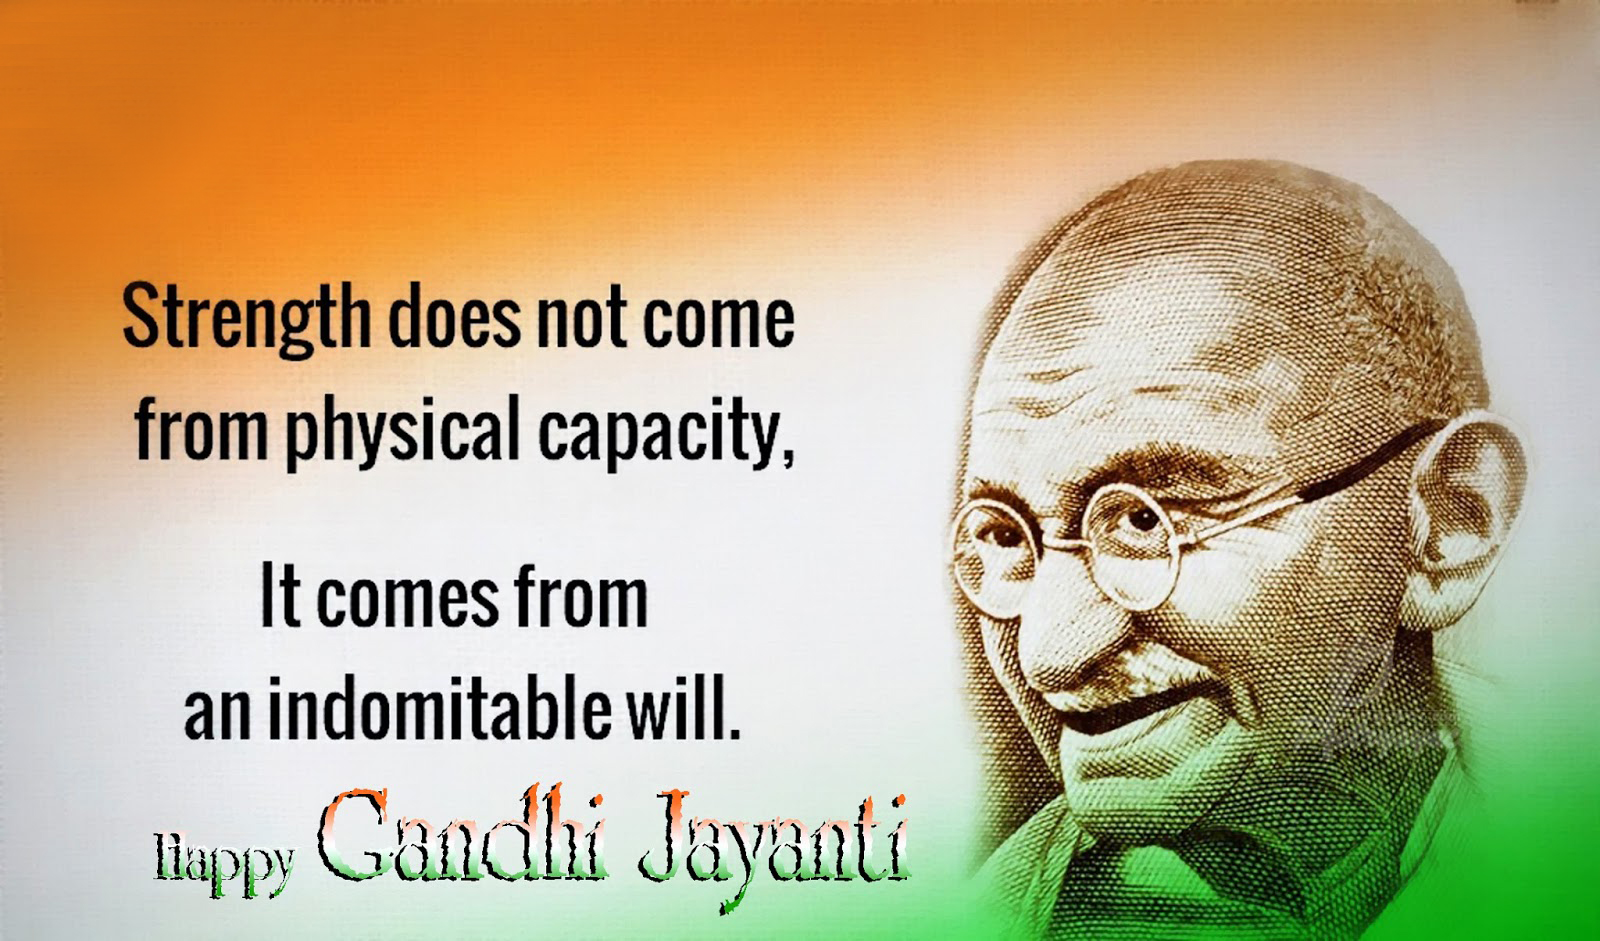 the impact of the mahatma gandhi Kasturba gandhi, the wife of mohandas karamchand gandhi known as mahatma gandhi, has not been studied much in works on gandhi there are.